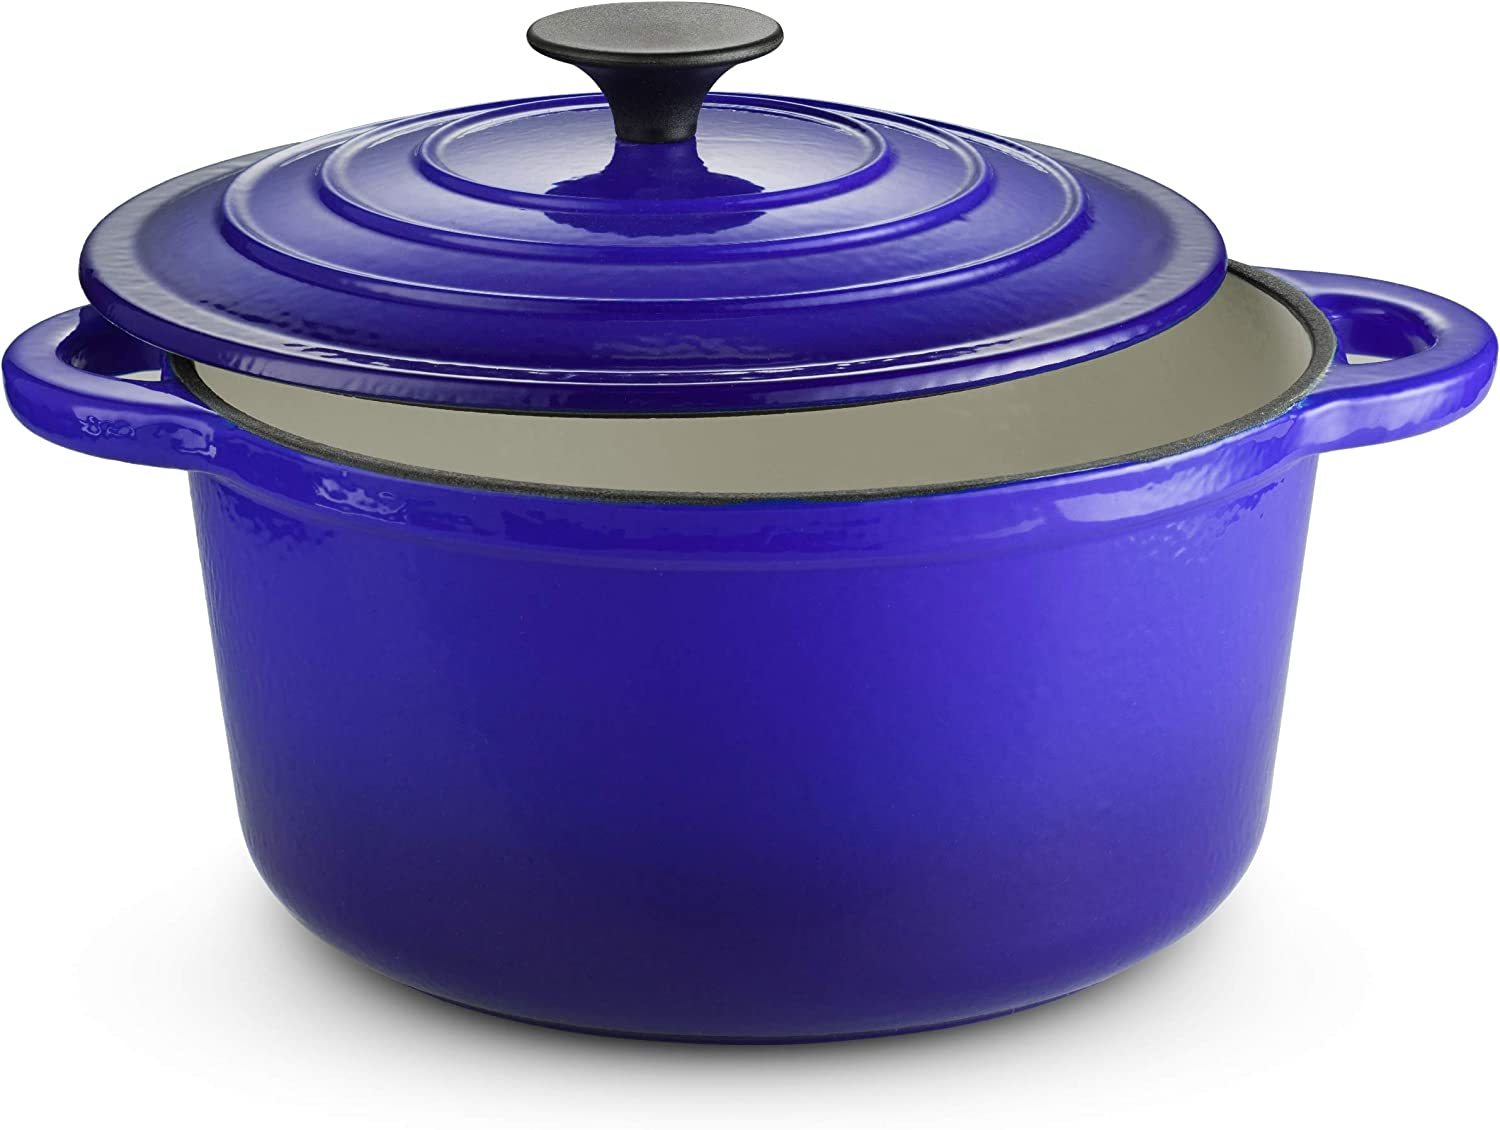 Klee Enameled Cast Iron Dutch Oven Casserole Dish with Self-Basting Cast Iron Lid, 4-Quart (Blue)